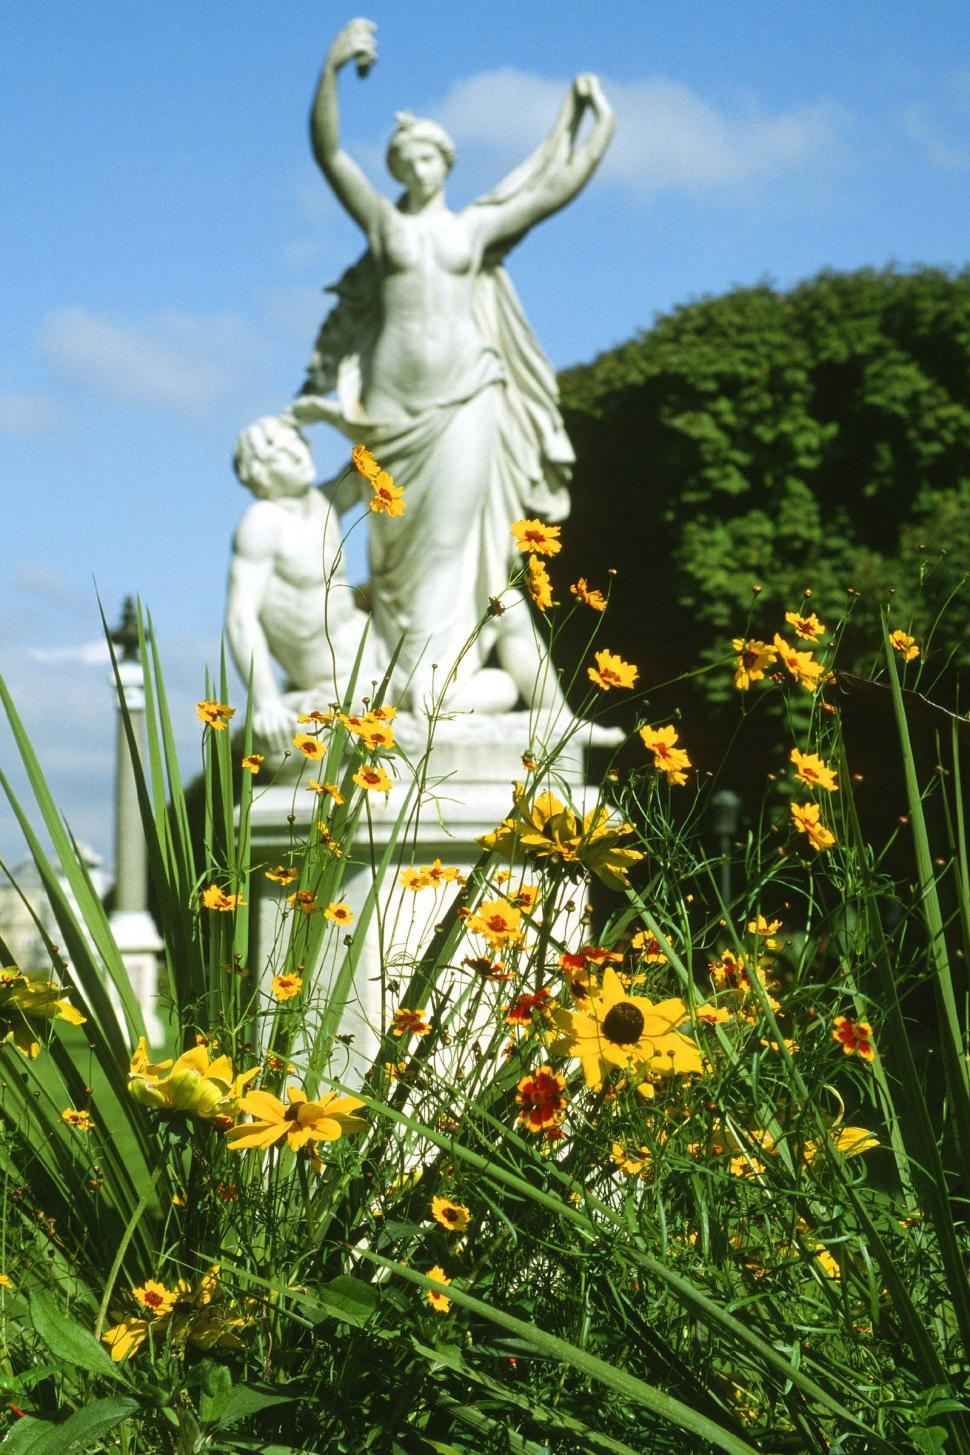 Download Free Stock HD Photo of Flowers and Garden statues Online